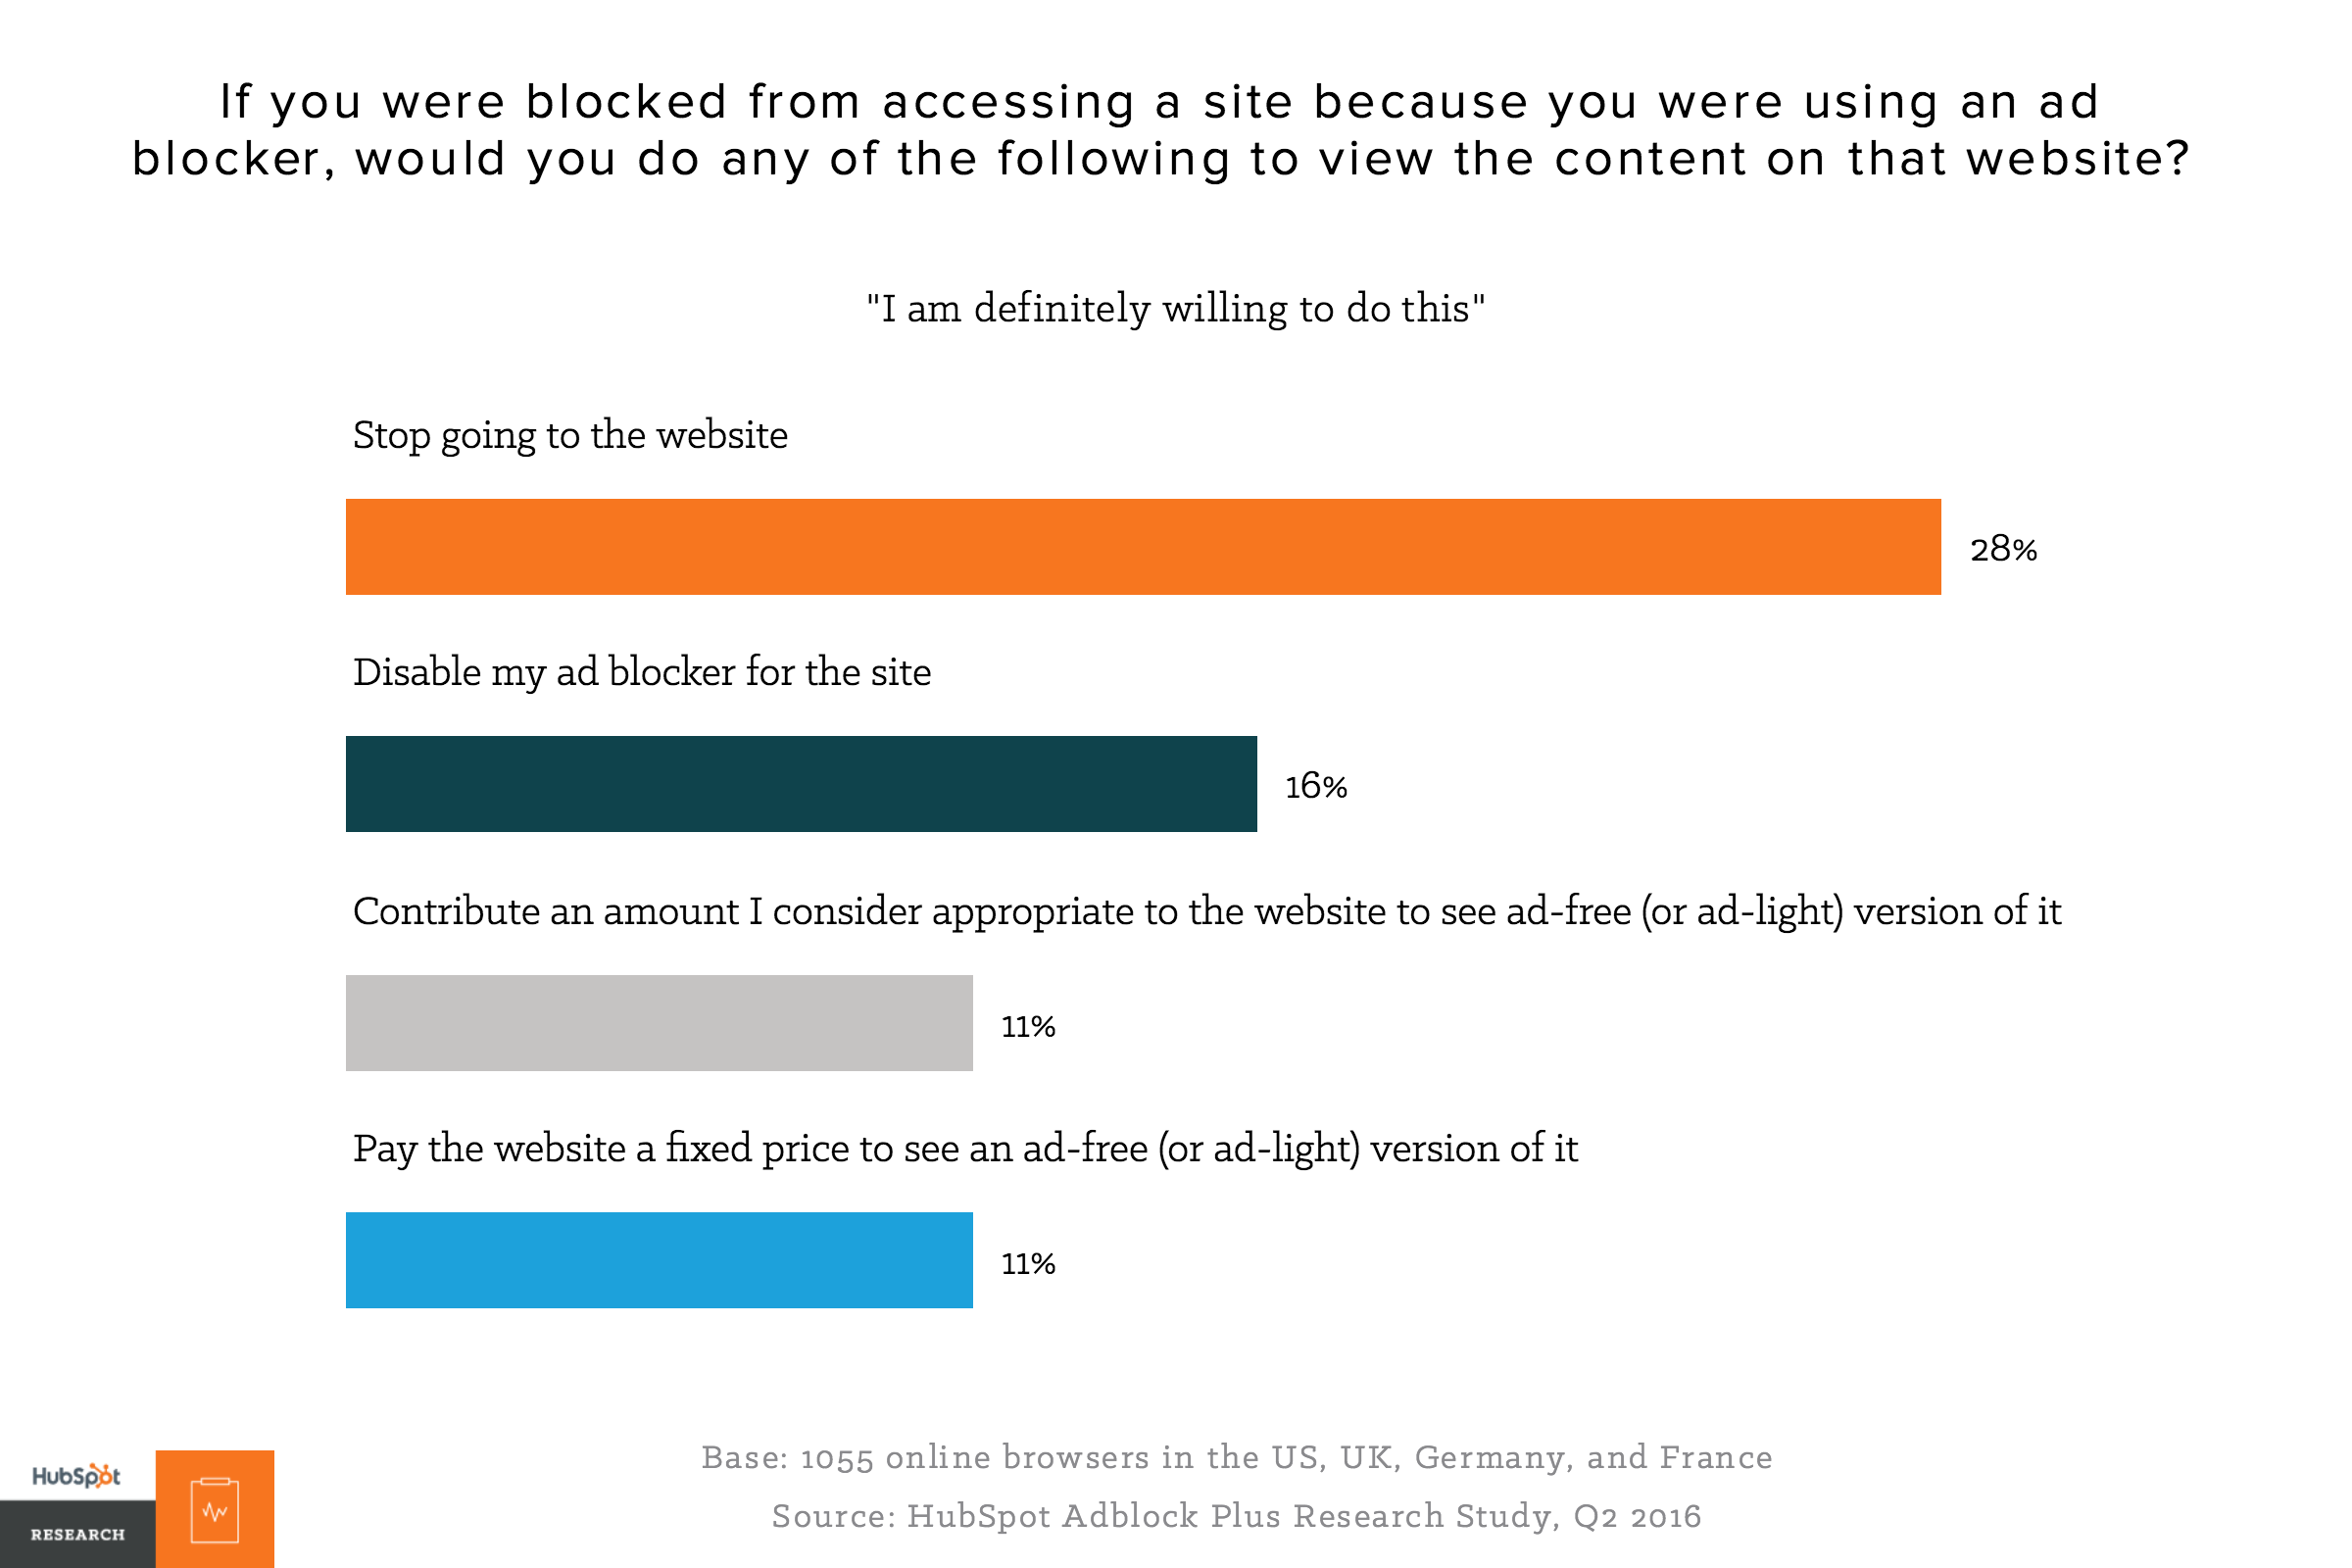 28% Would Simply Stop Visiting The Site While 16% Were Willing To Disable  Their Ad Blocker To Access The Content